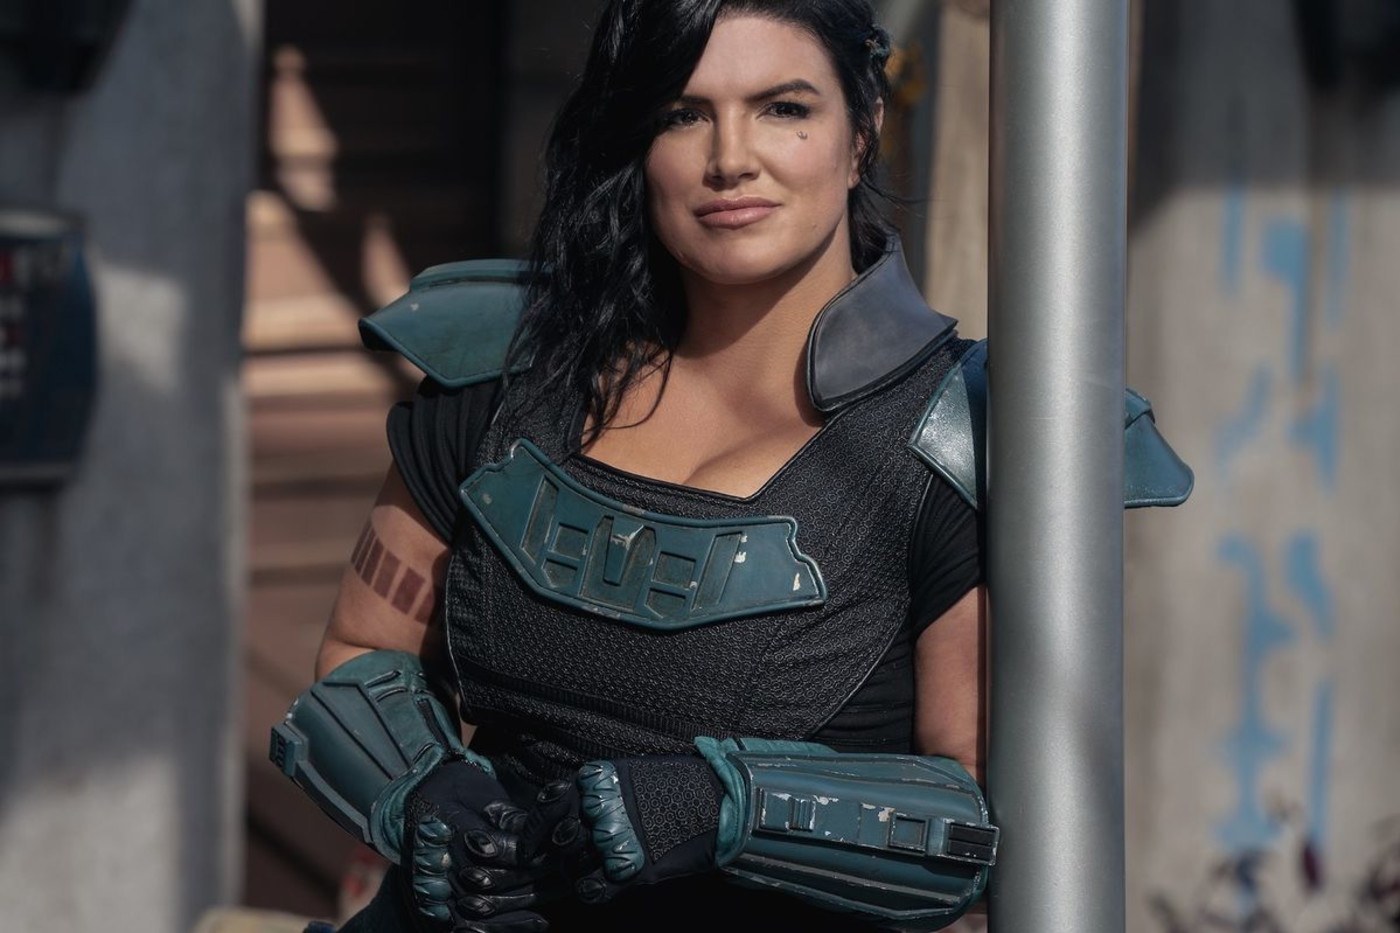 Gina Carano Fired From Disney's The Mandalorian